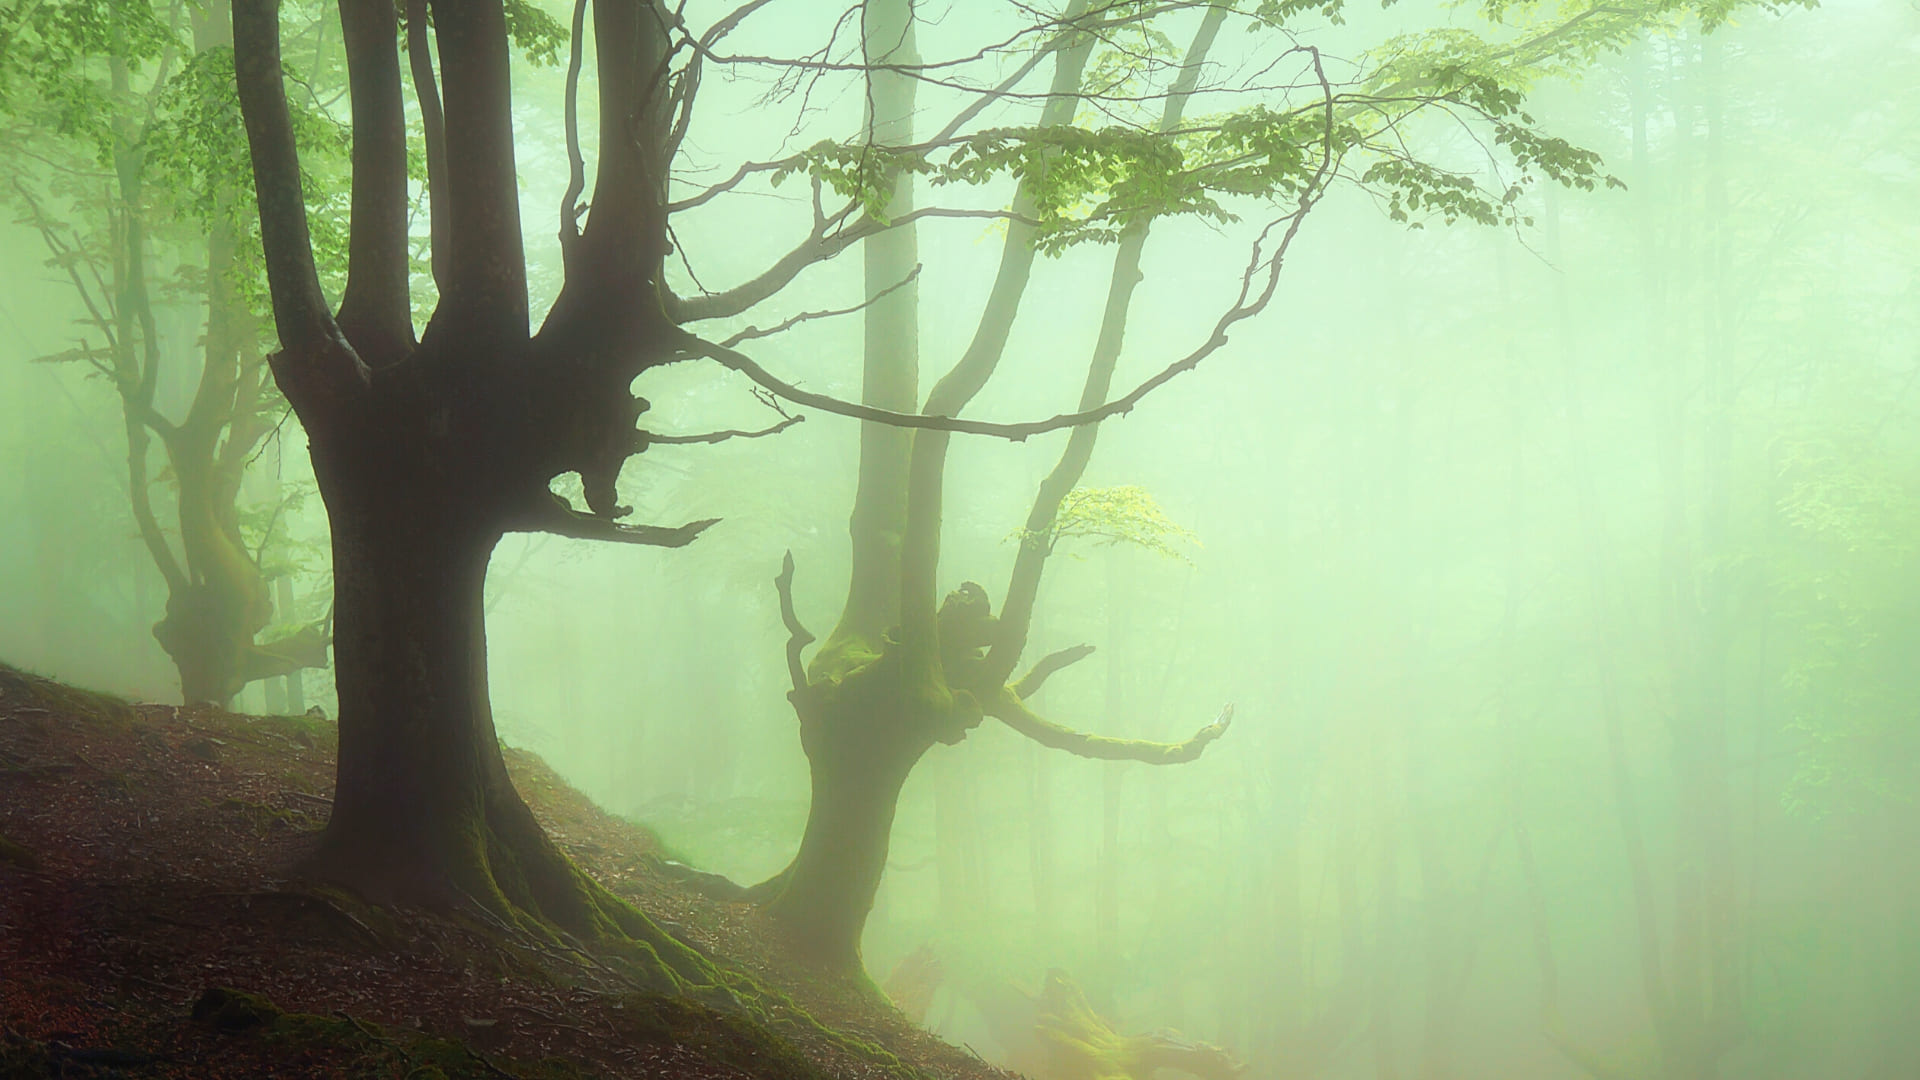 Spooky forest path background